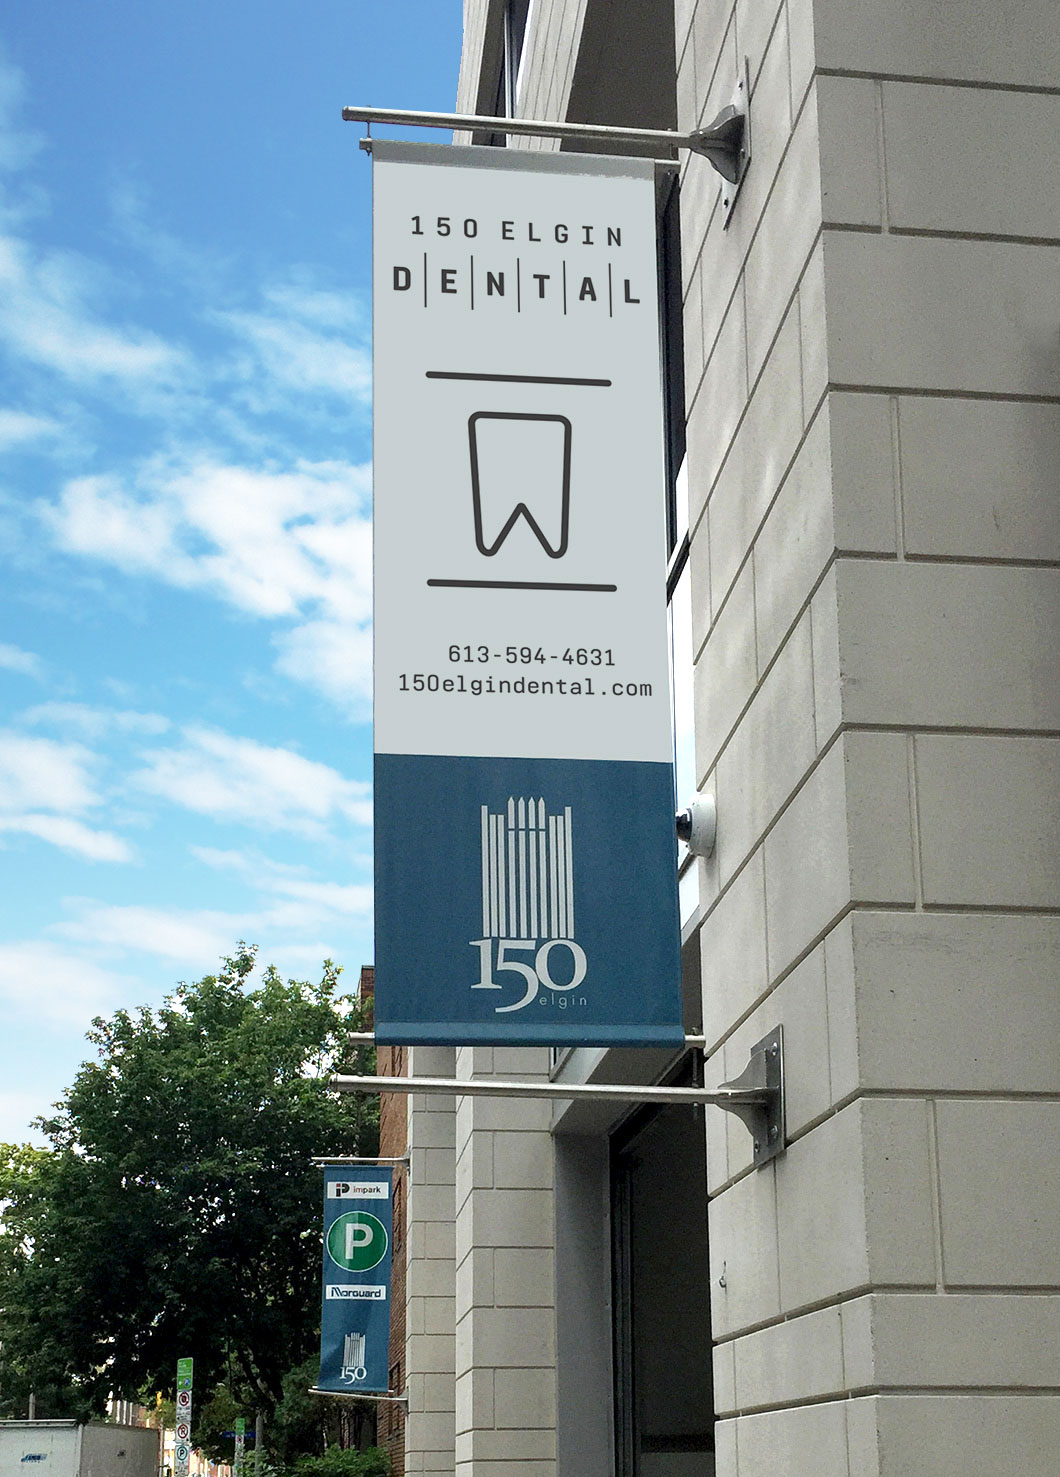 Signage for 150 Elgin Dental, an Ottawa dentist by Graphic Design Studio idApostle